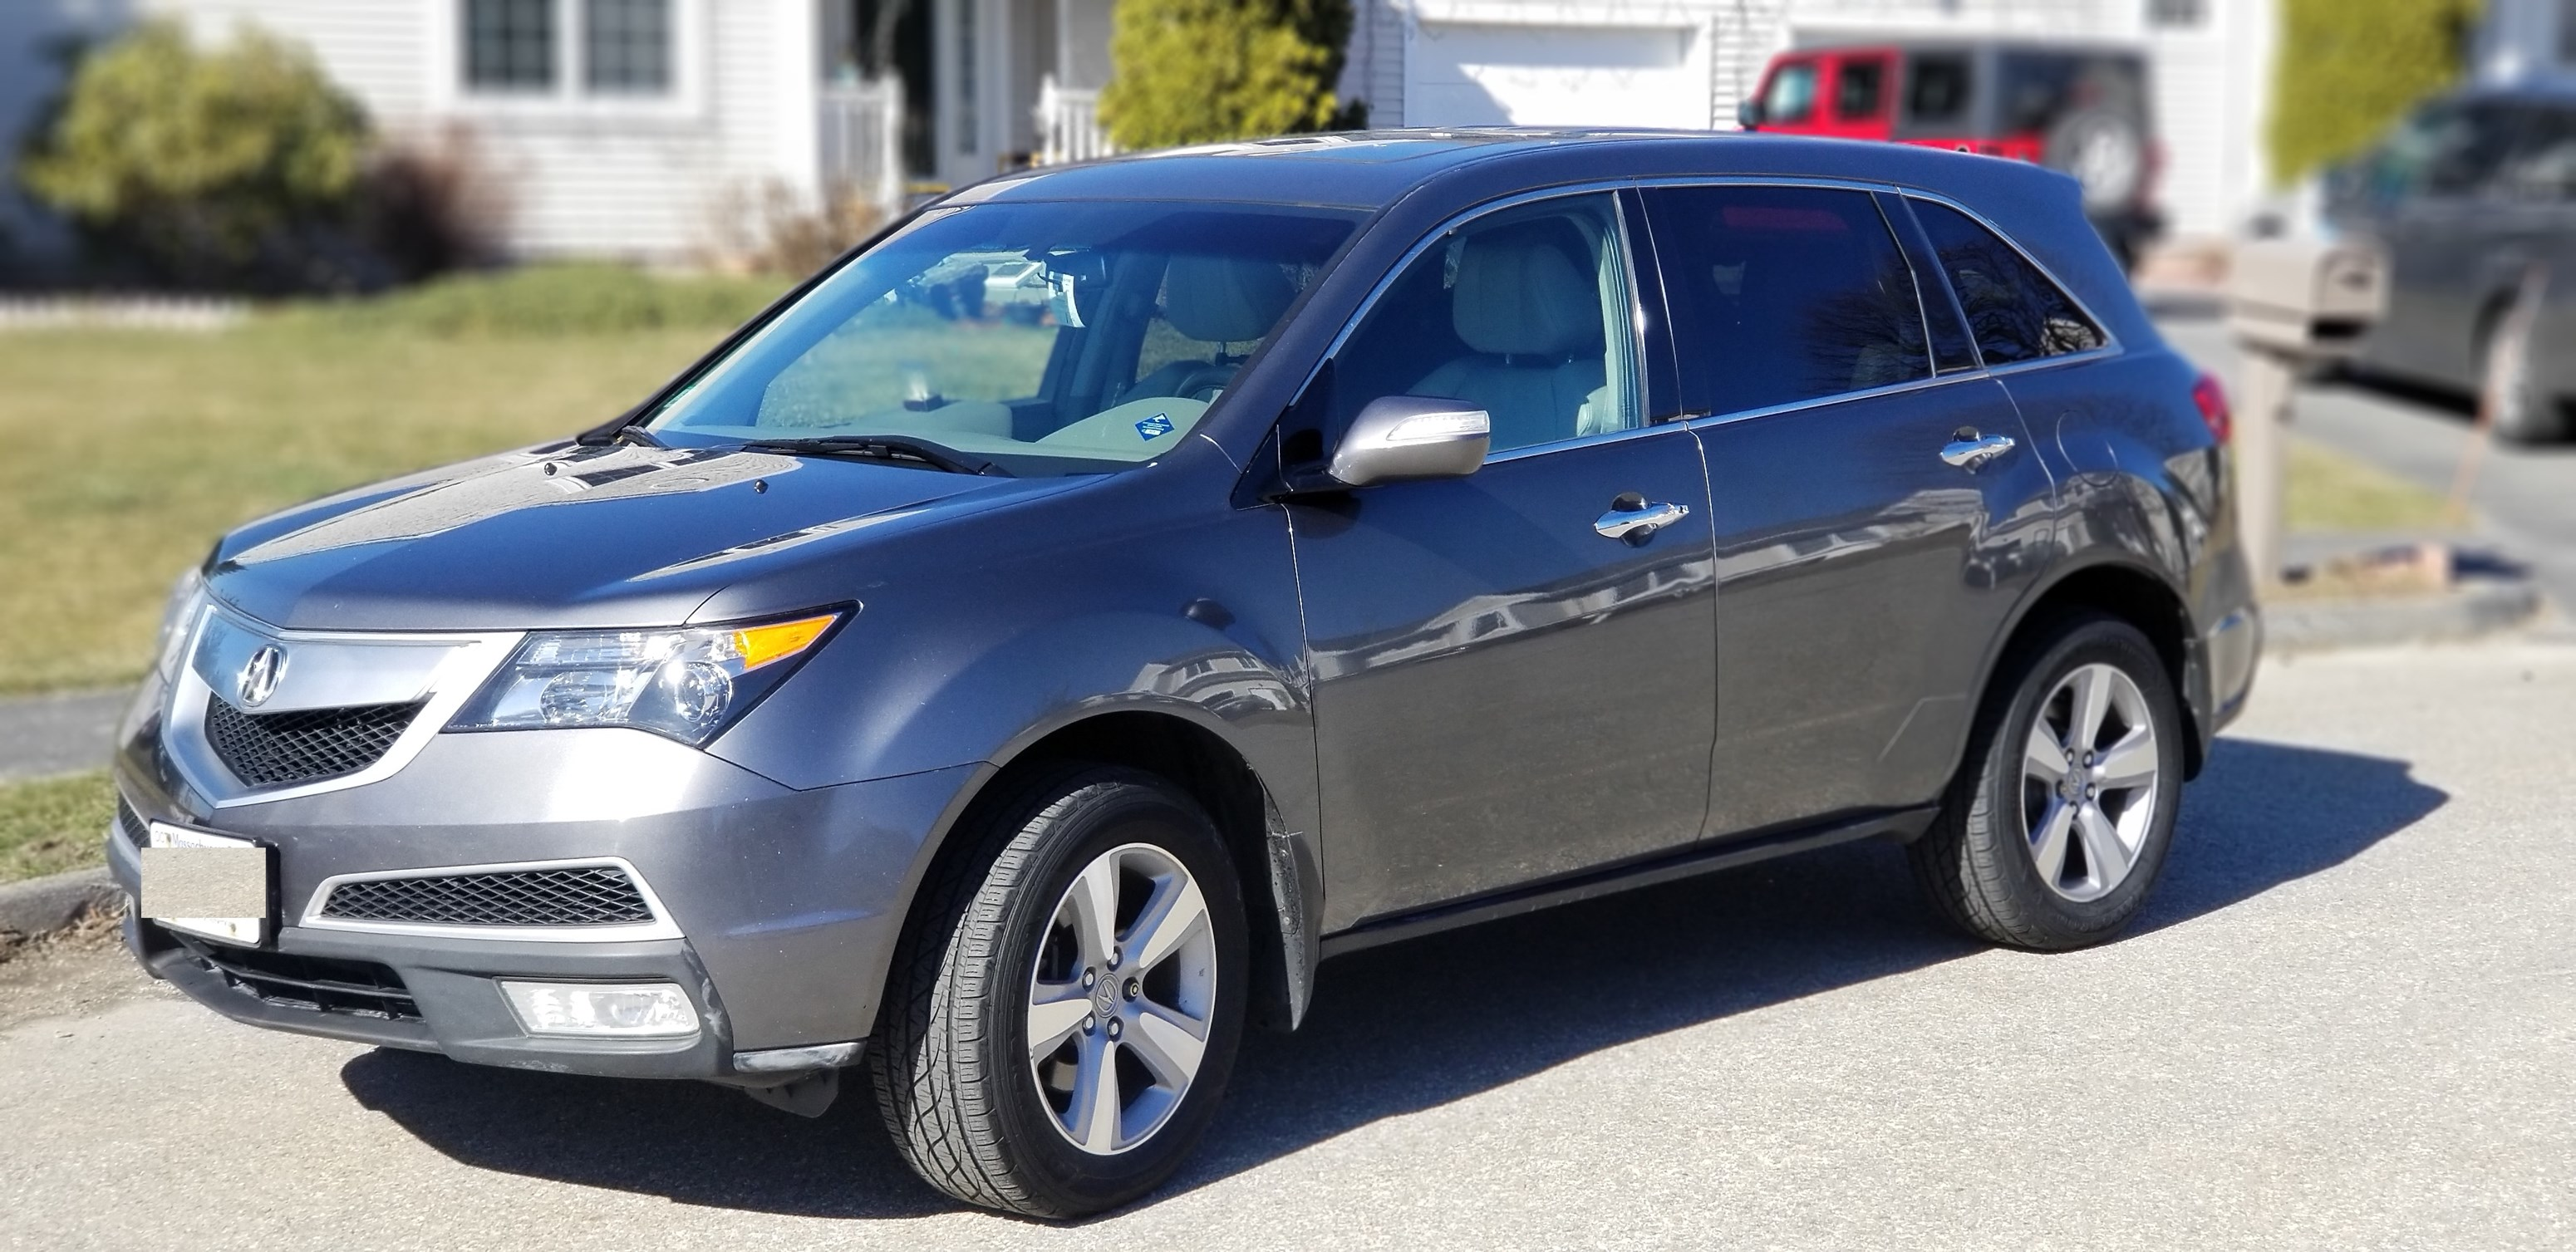 rebuilt acura forums type hartford location sale for in tl mdx s ct sold cars member img title